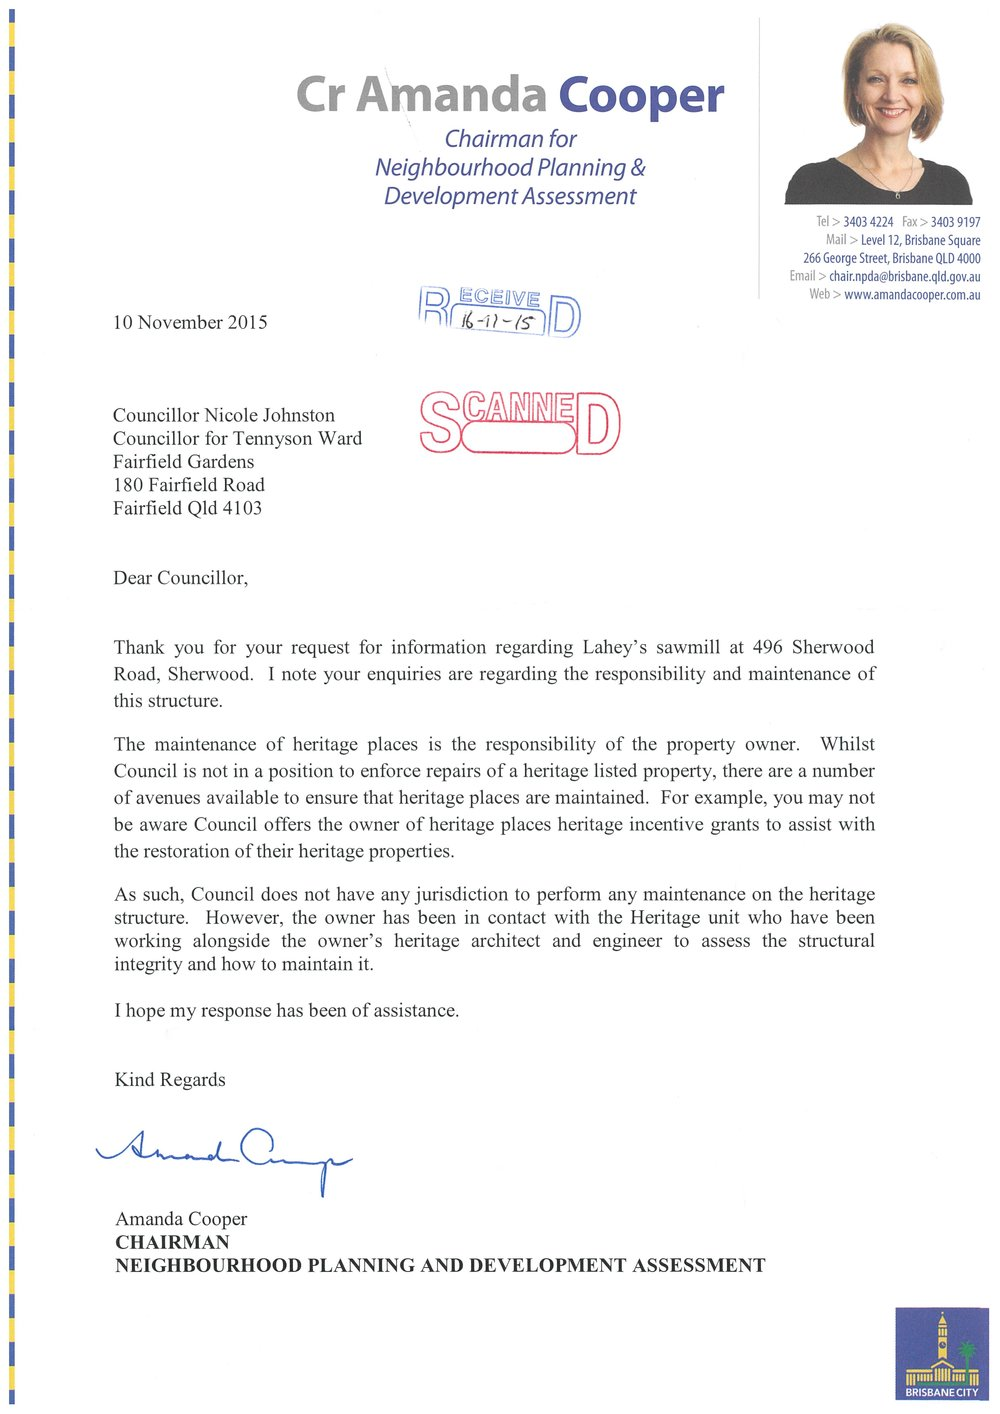 Response to Councillor Nicole Johnston regarding the heritage-listed Lahey Sawmill.